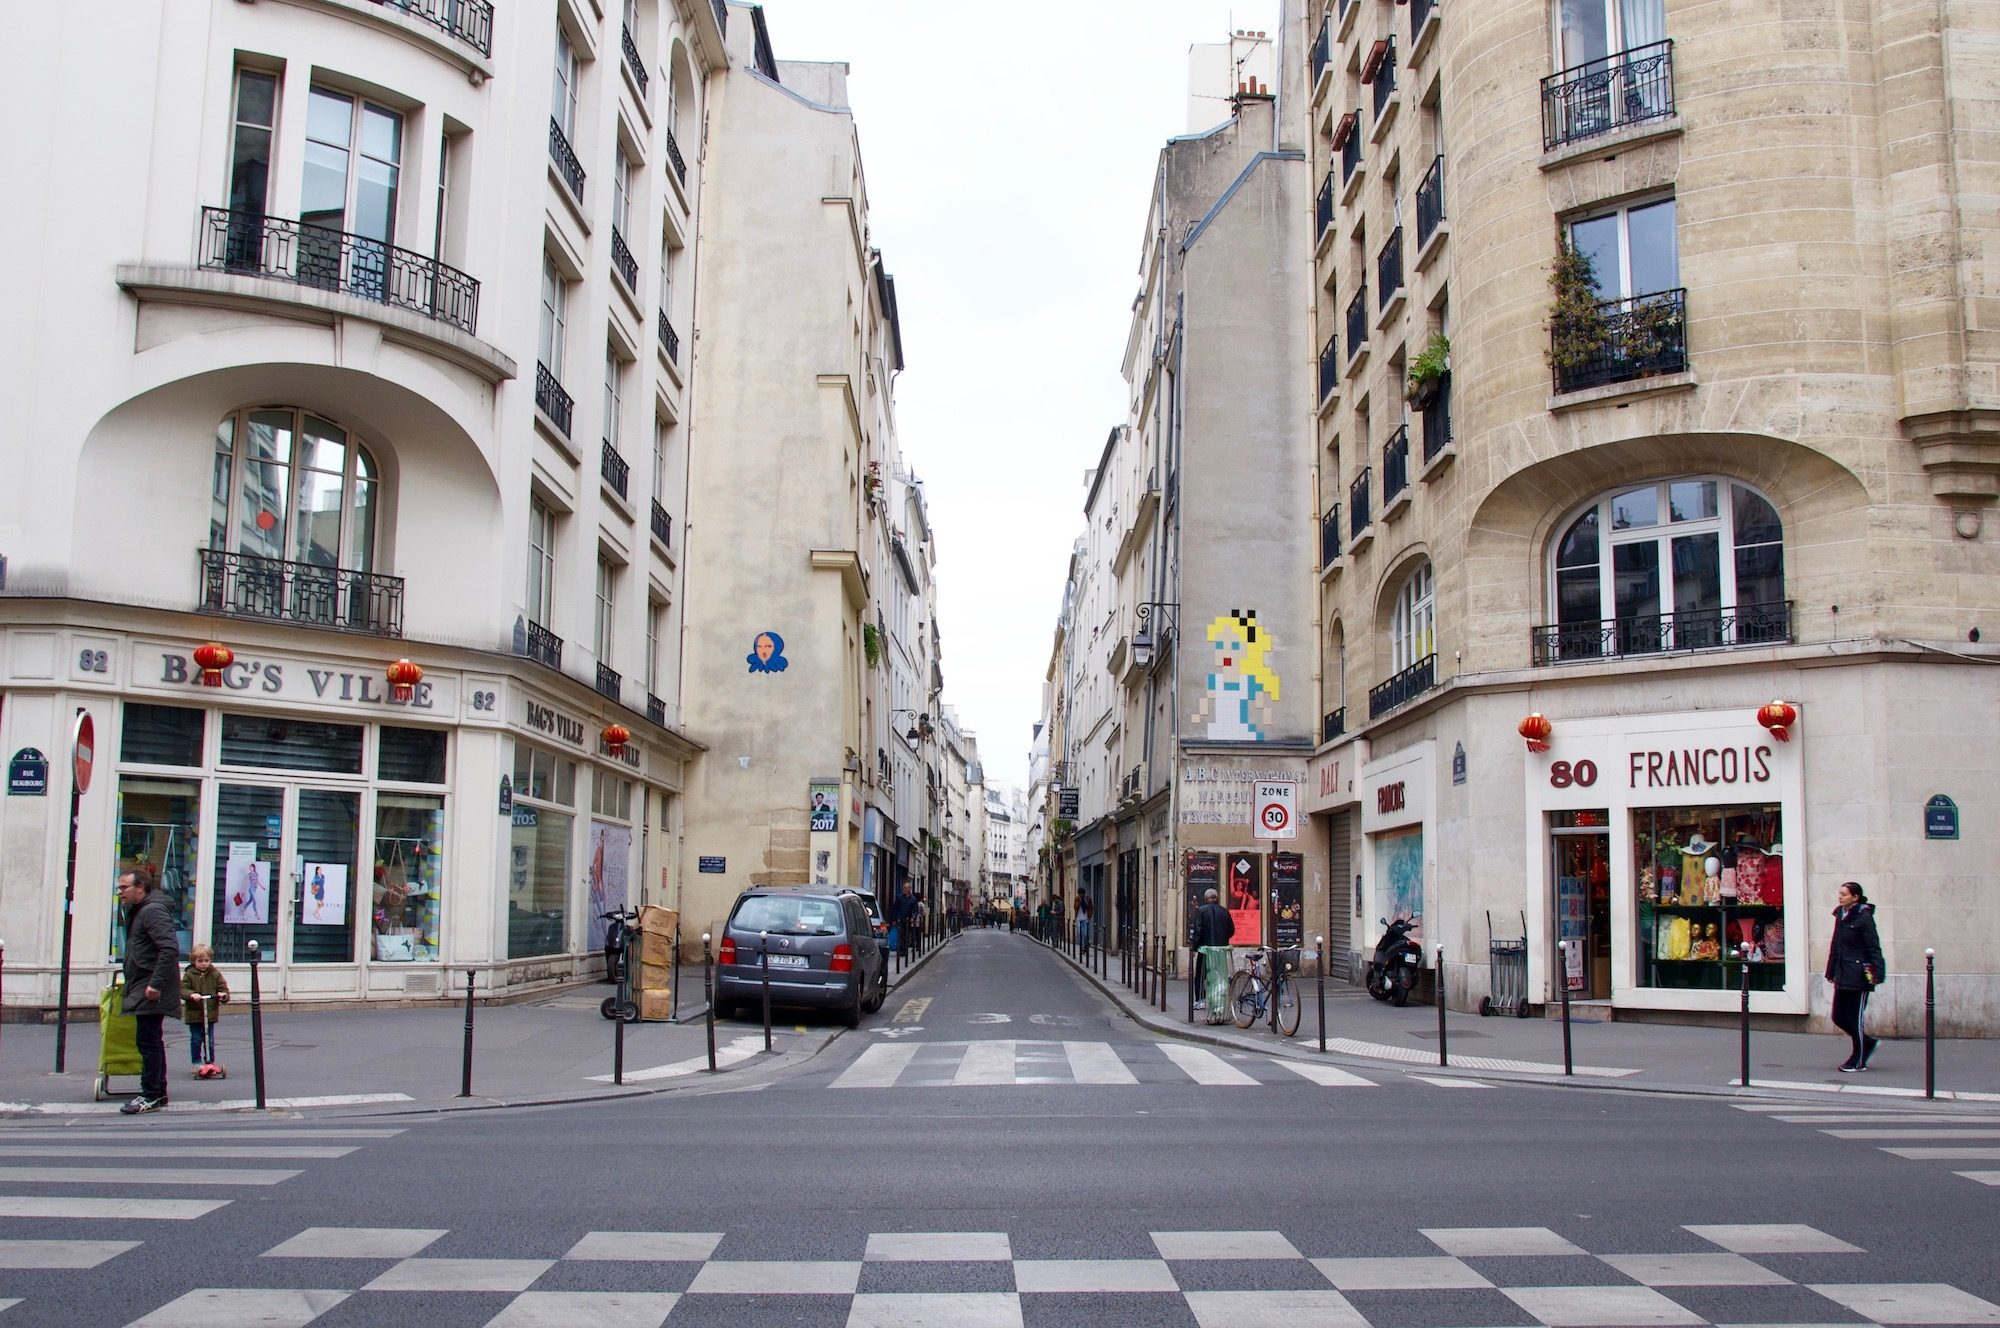 Street art in Paris has become huge and locals love to spot Invader's street art mosaics all over Paris.